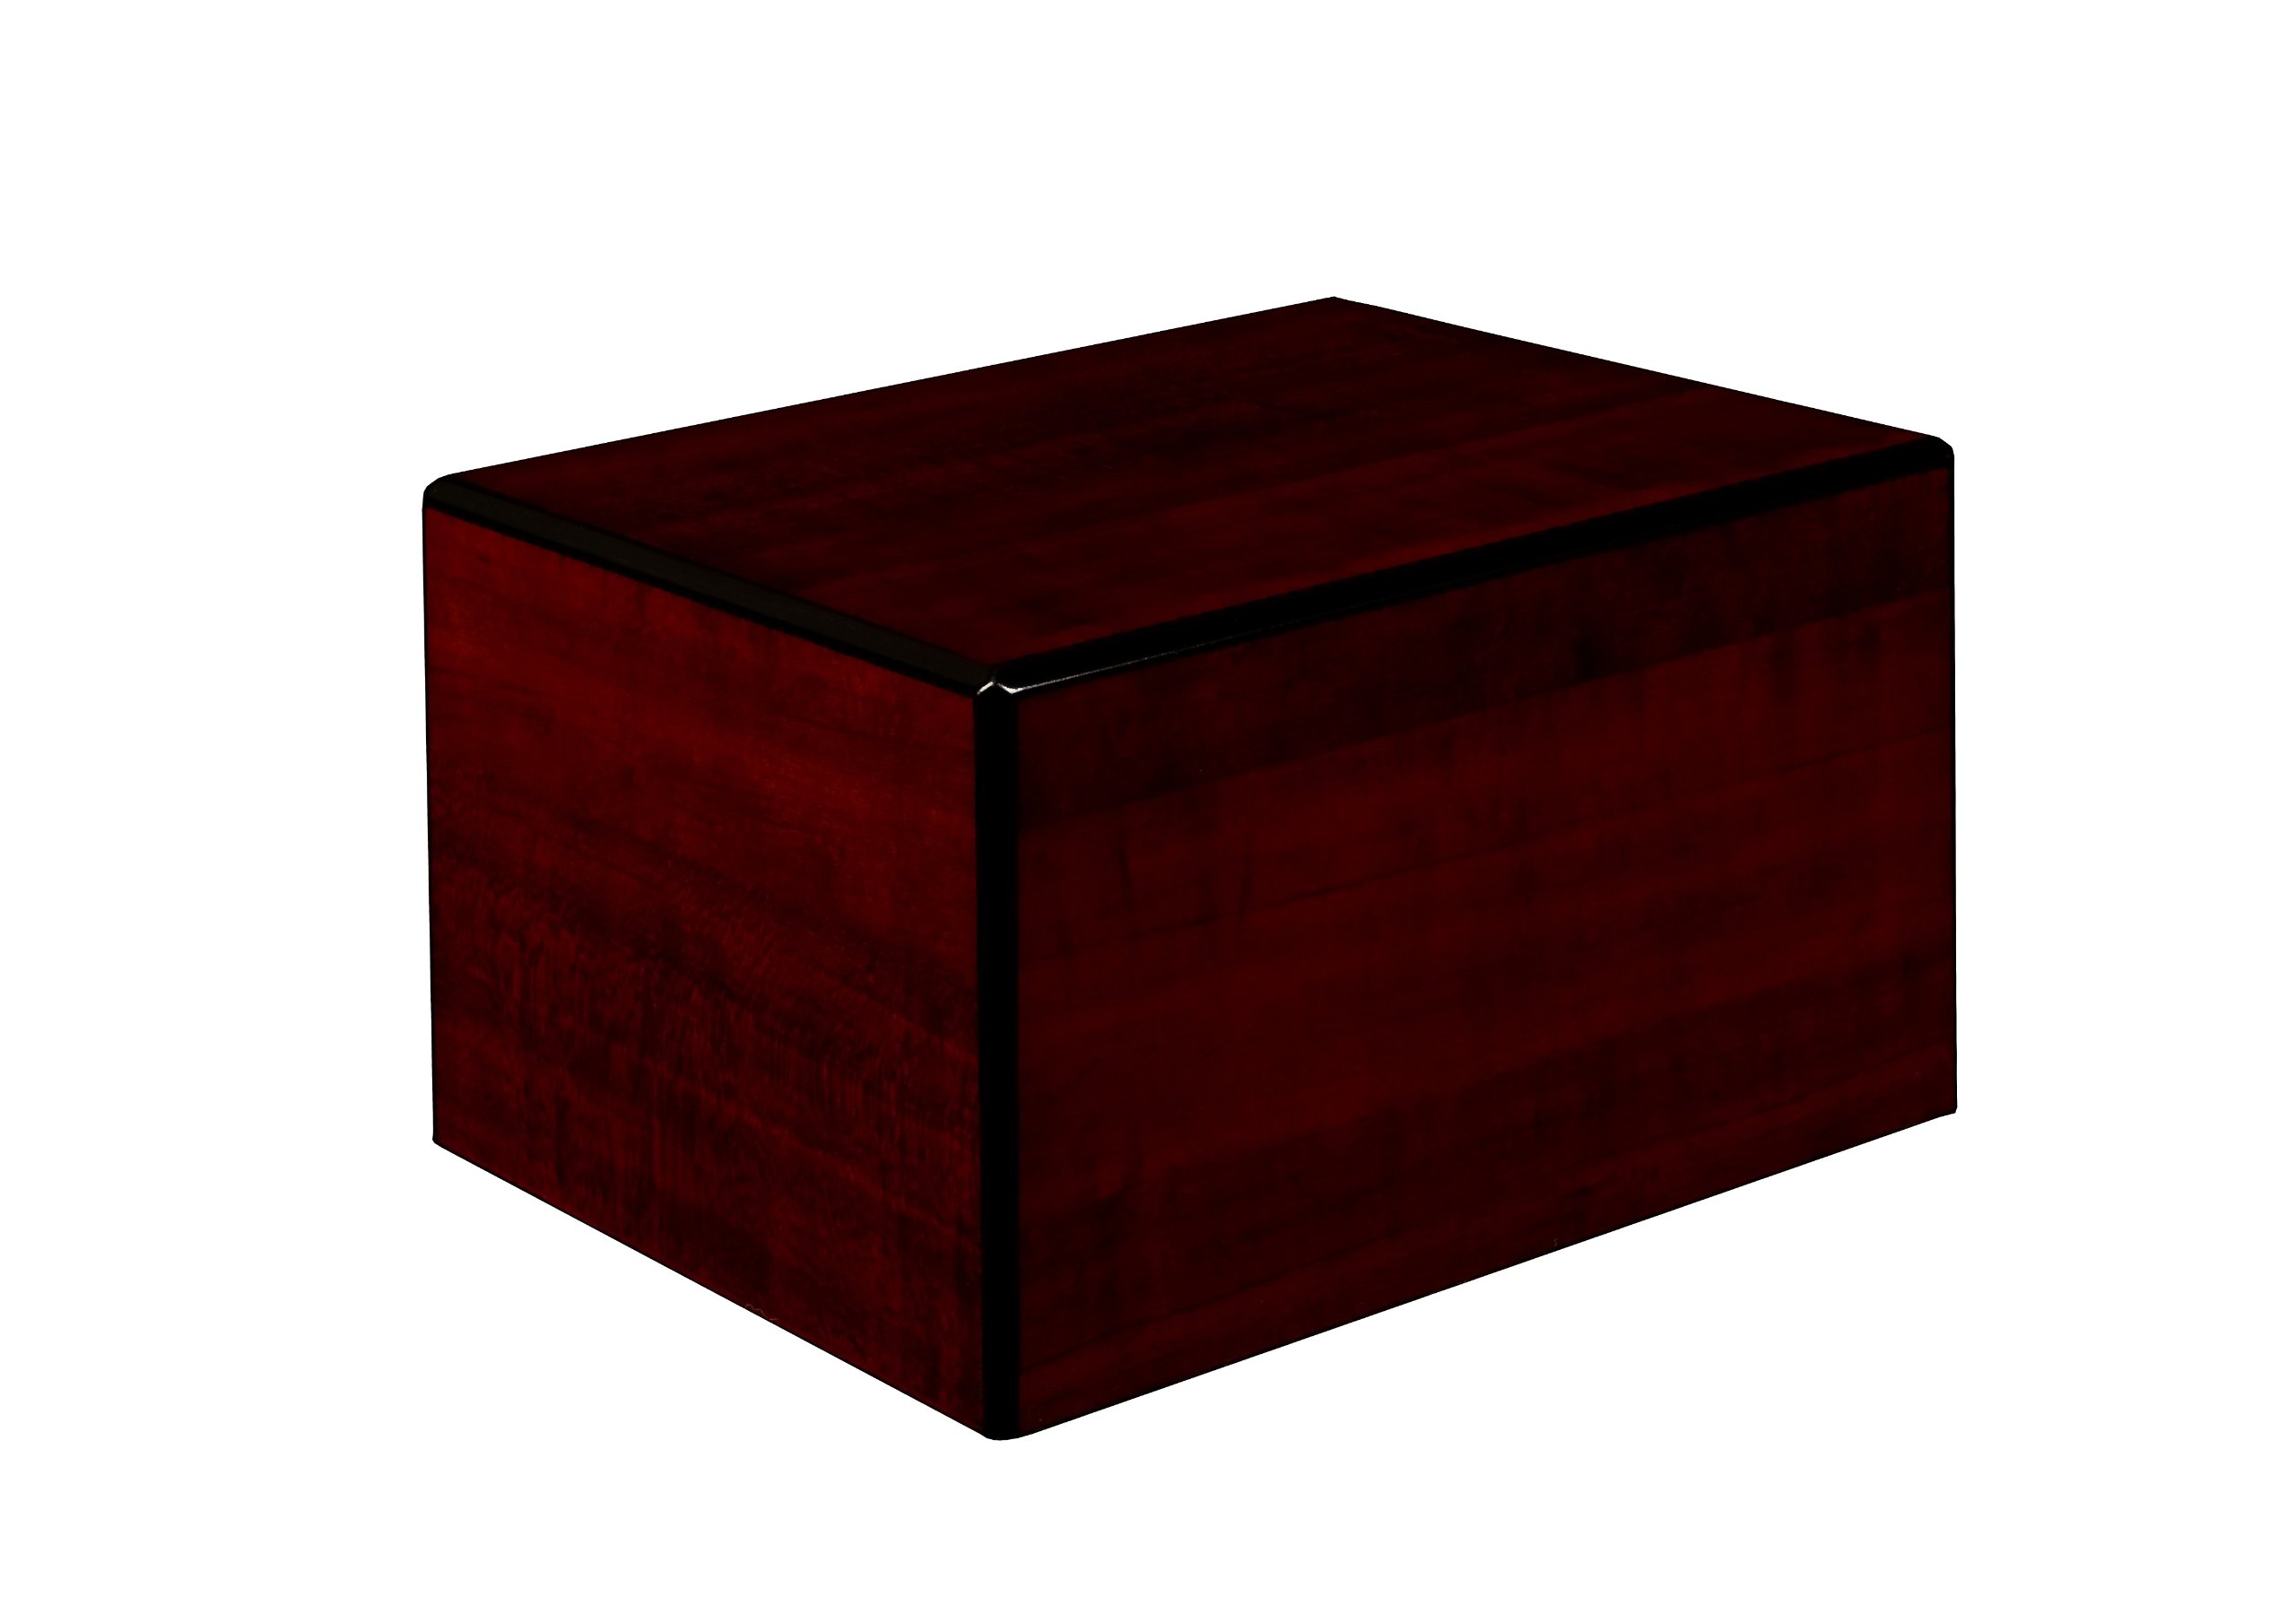 Chateau Urns Society Collection, Large Adult Cremation Urn, Cherry wood finish by Unforgettable Urns (Image #1)